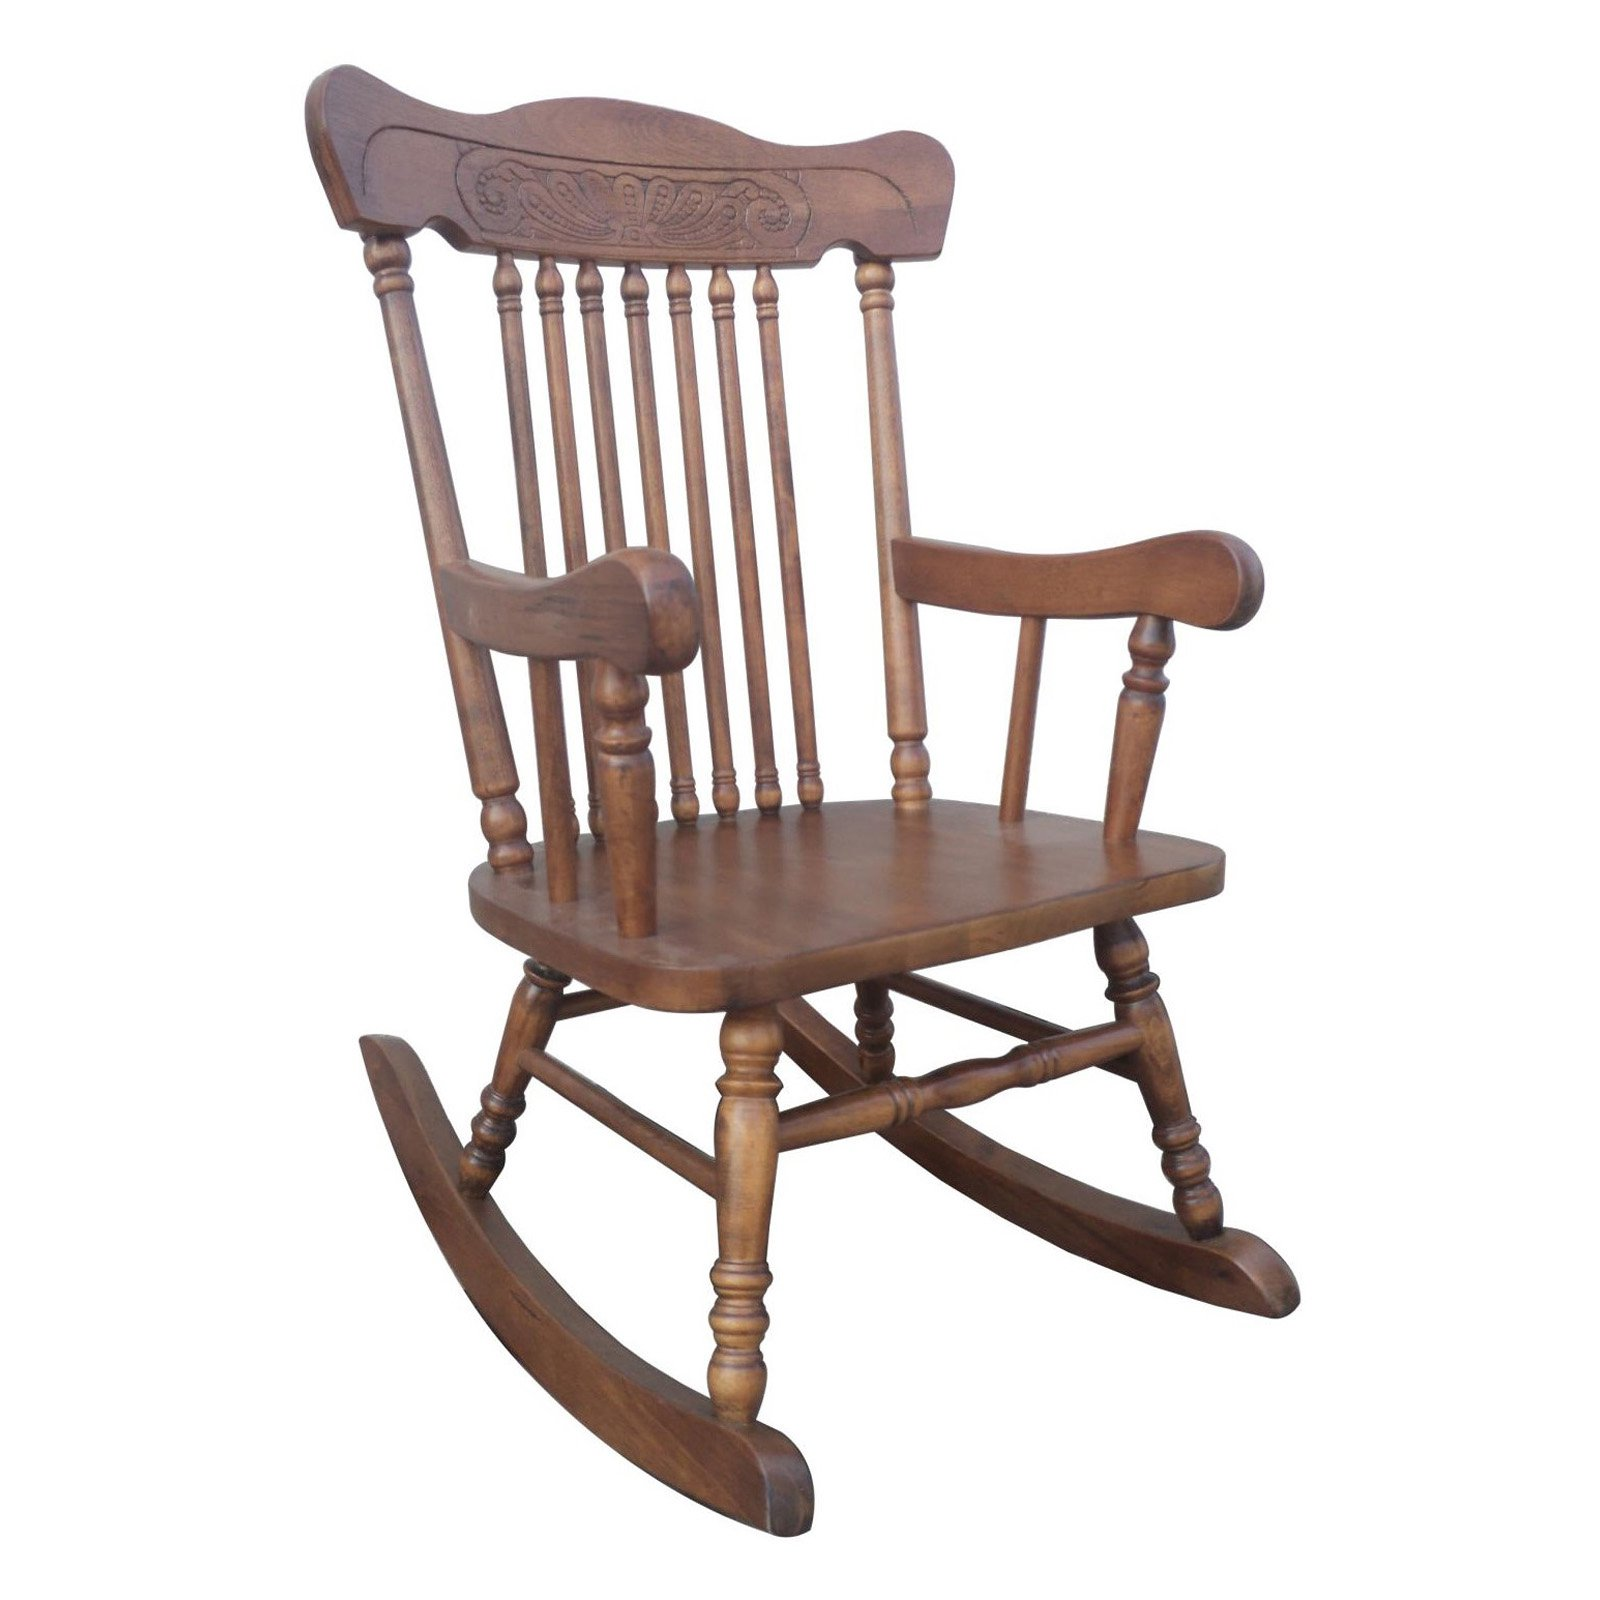 Chelsea Home Furniture Bearwood Childs Rocking Chair